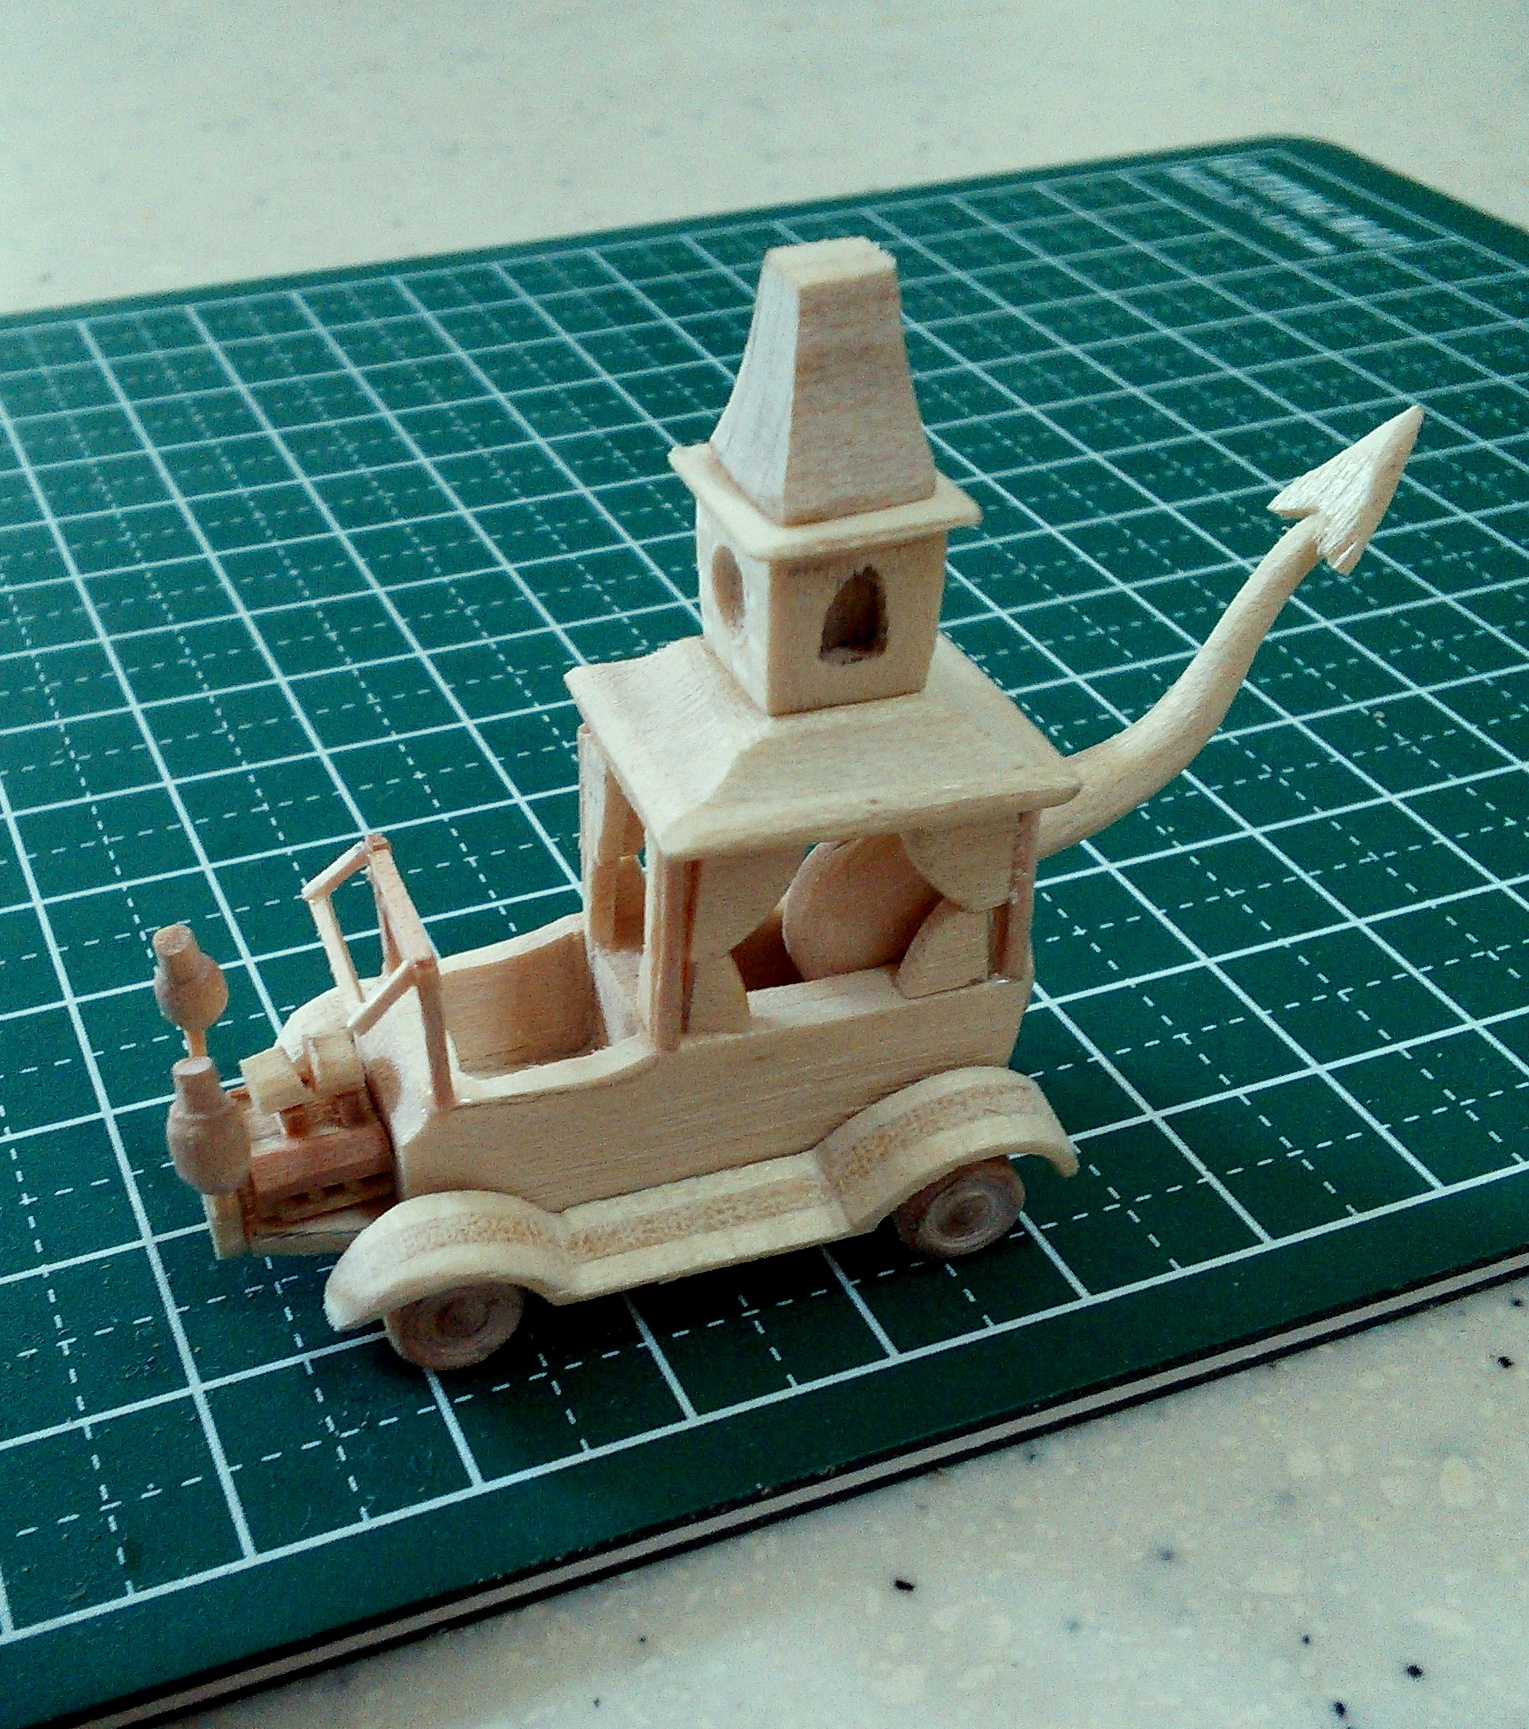 Mini Wacky Races No. 2 - Creepy Coupe Popsicle Stick Model